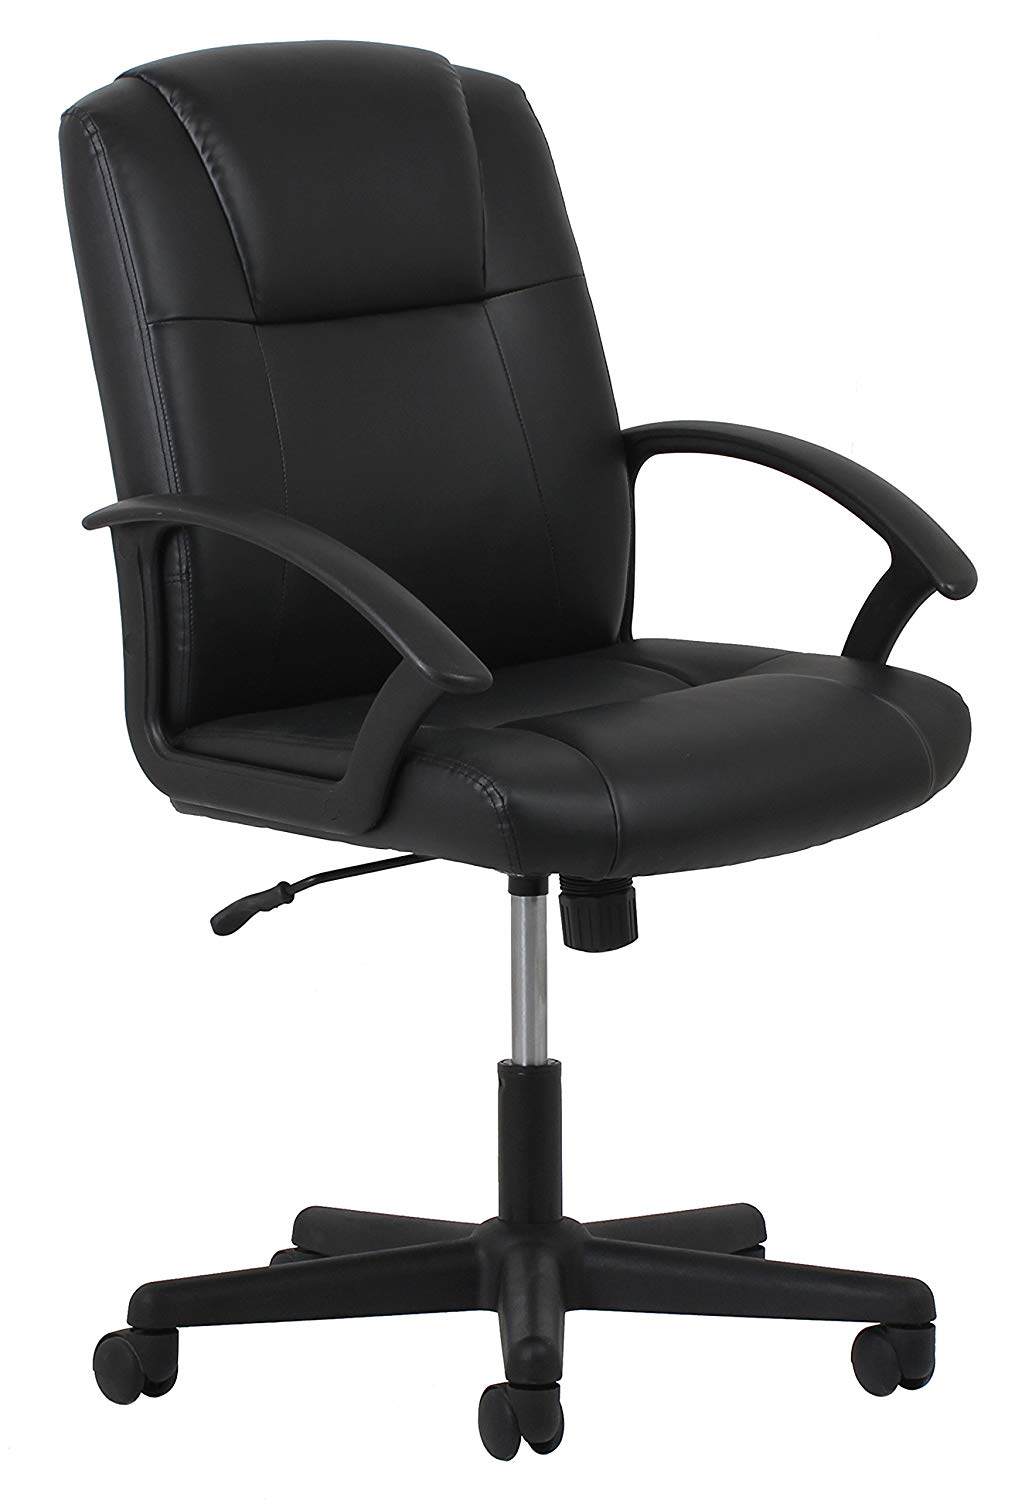 OFM Essentials Leather Executive Computer Chair